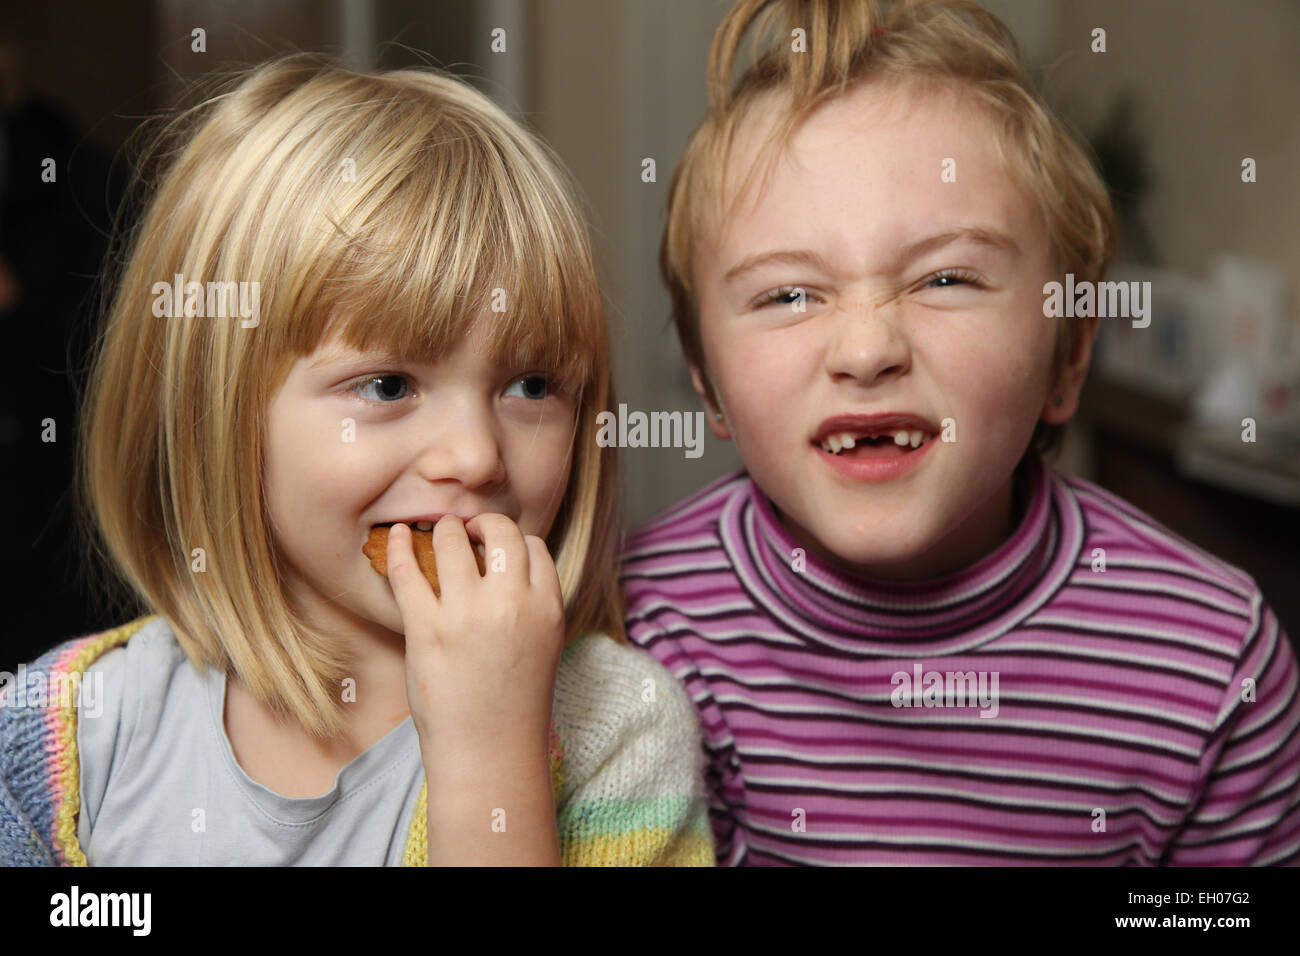 Children making funny faces - model released - Stock Image